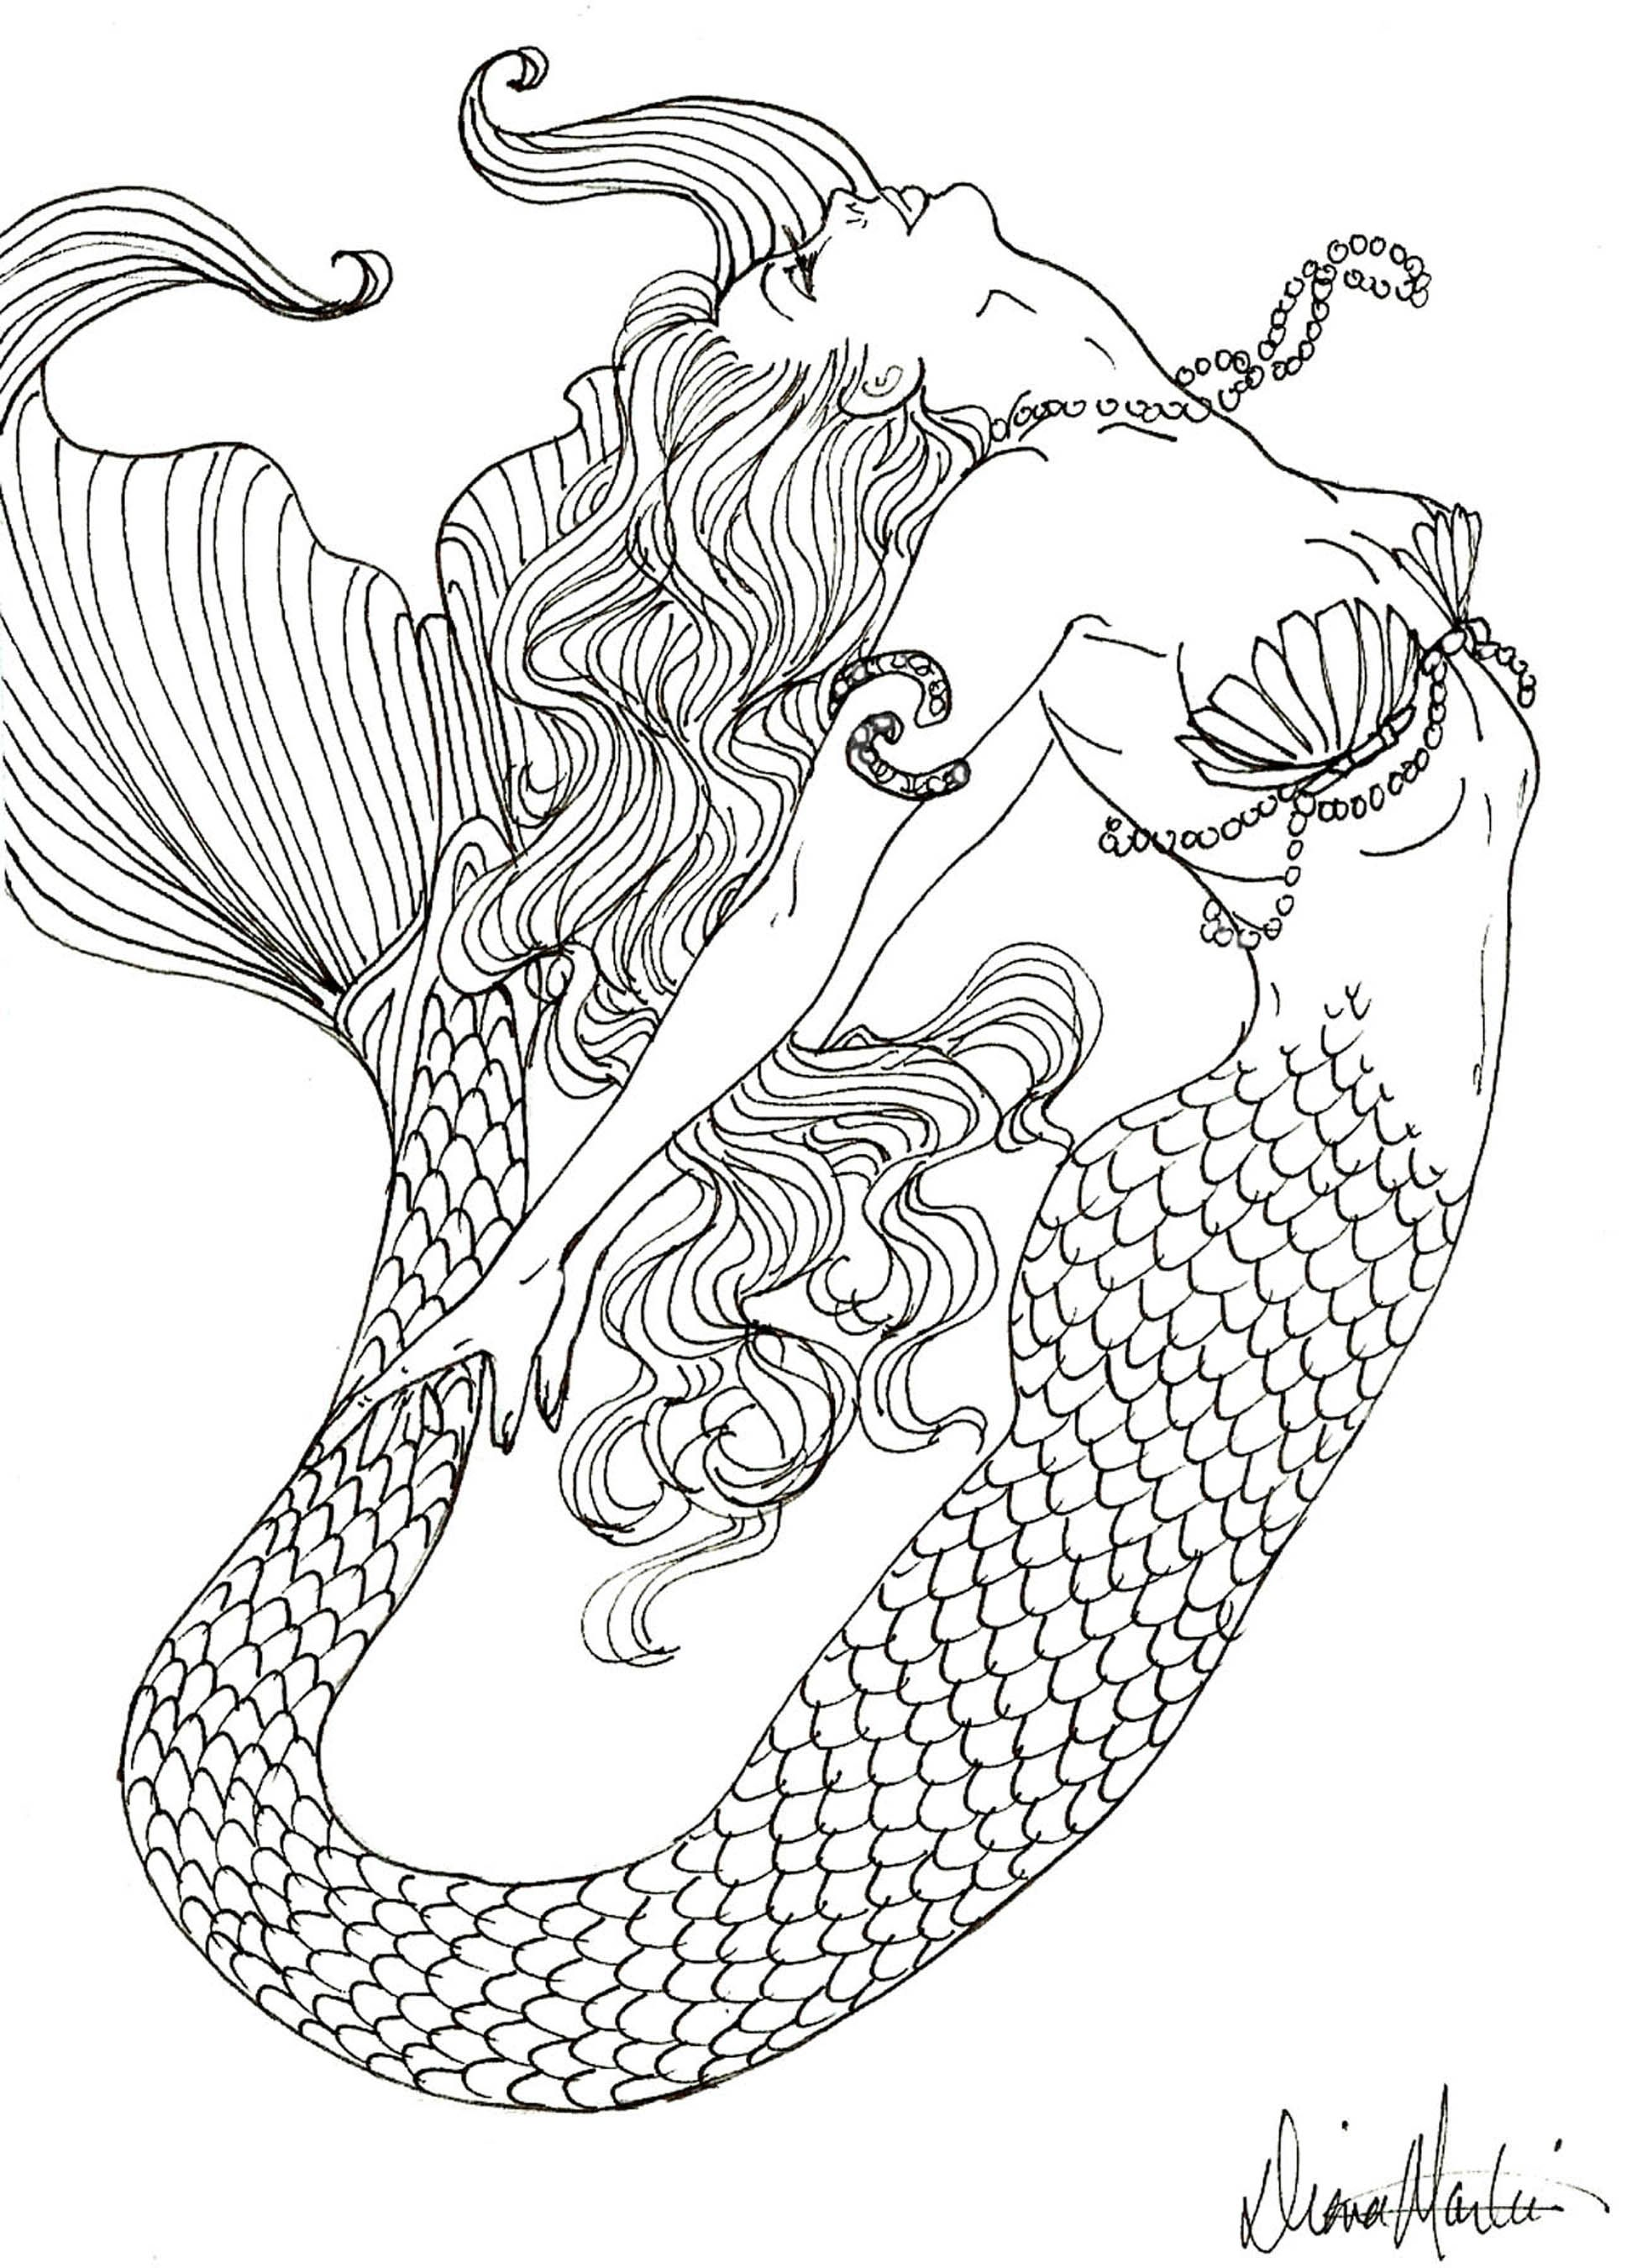 Coloring Pages Mermaids Coloring Pages To Print Mermaid Coloring Book Detailed Coloring Pages Realistic Mermaid